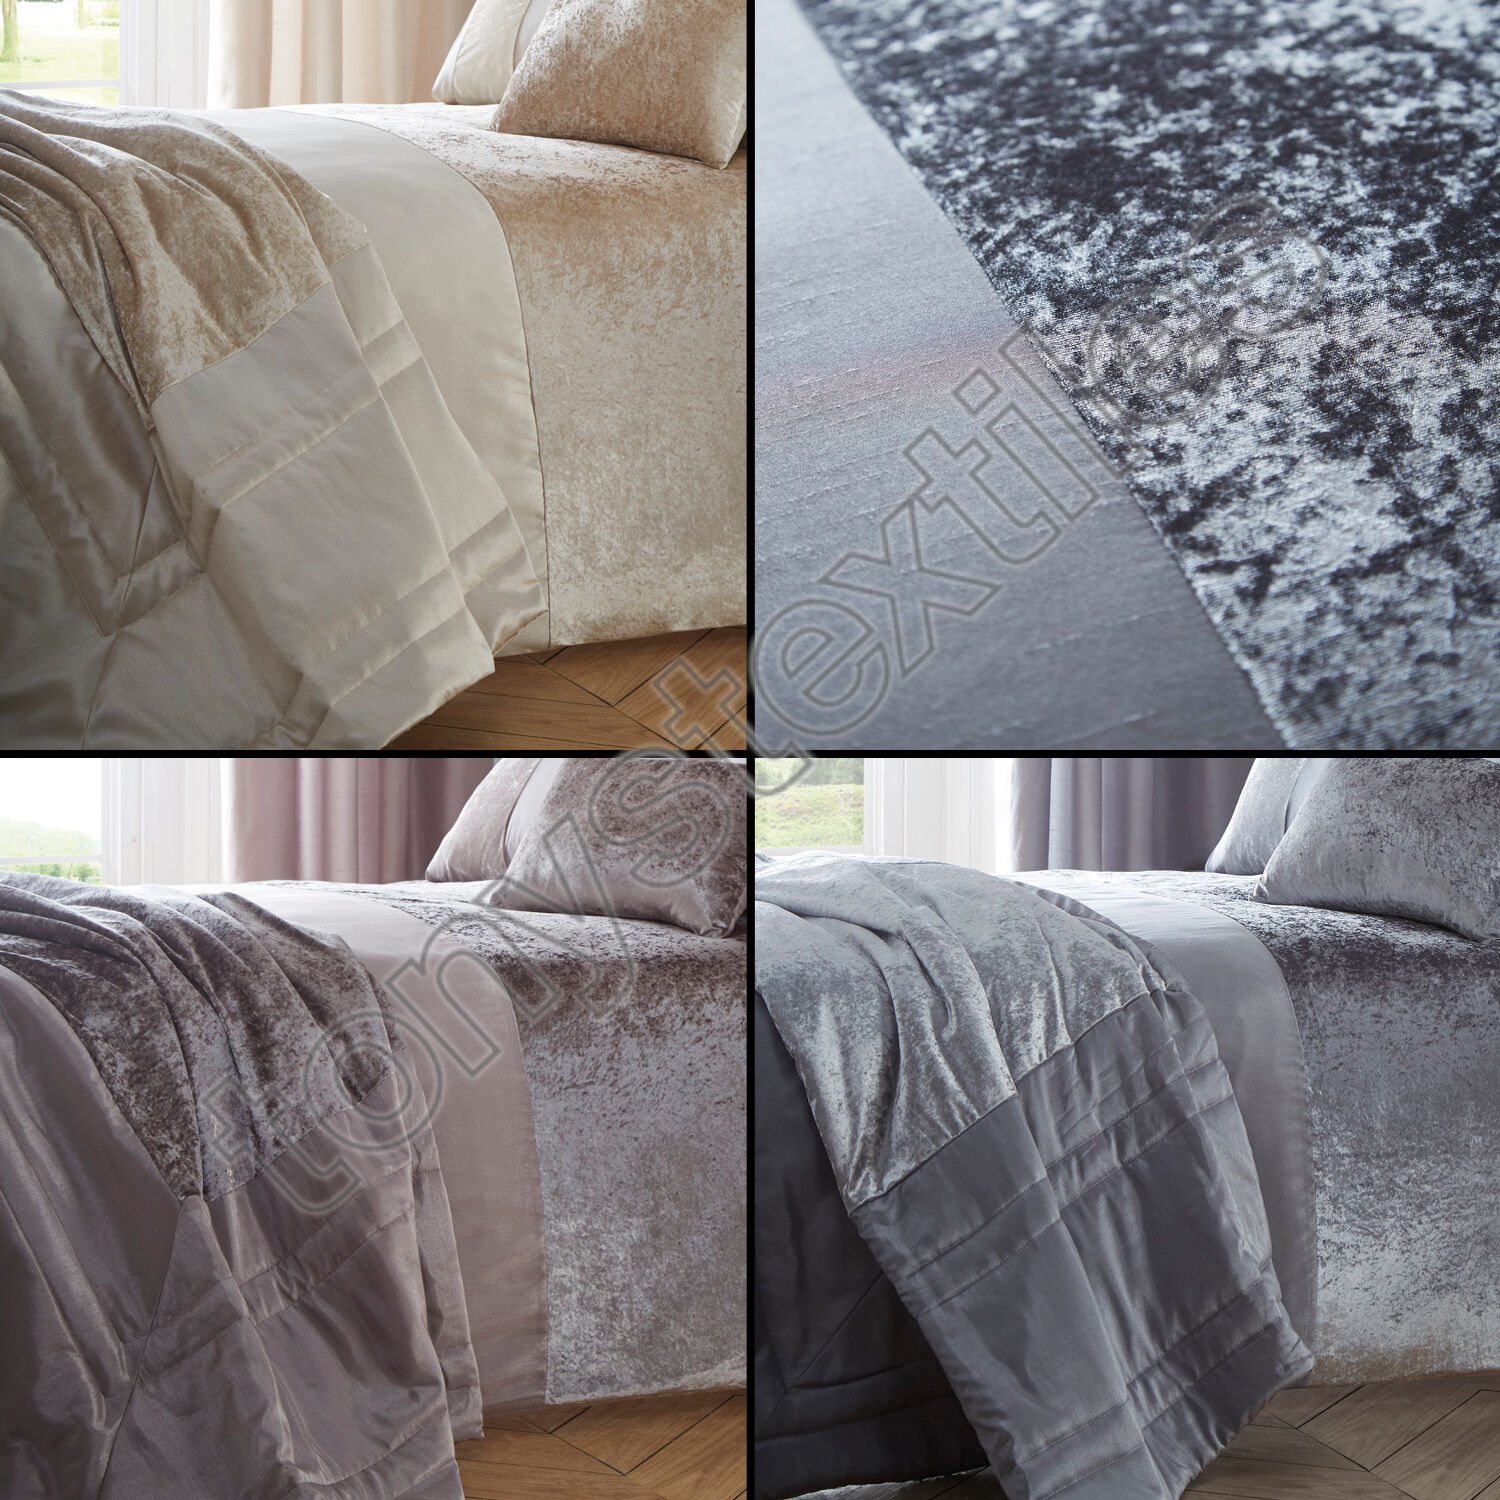 grey crushed velvet chair covers advantage church chairs luxury panel quilt duvet cover bedding set